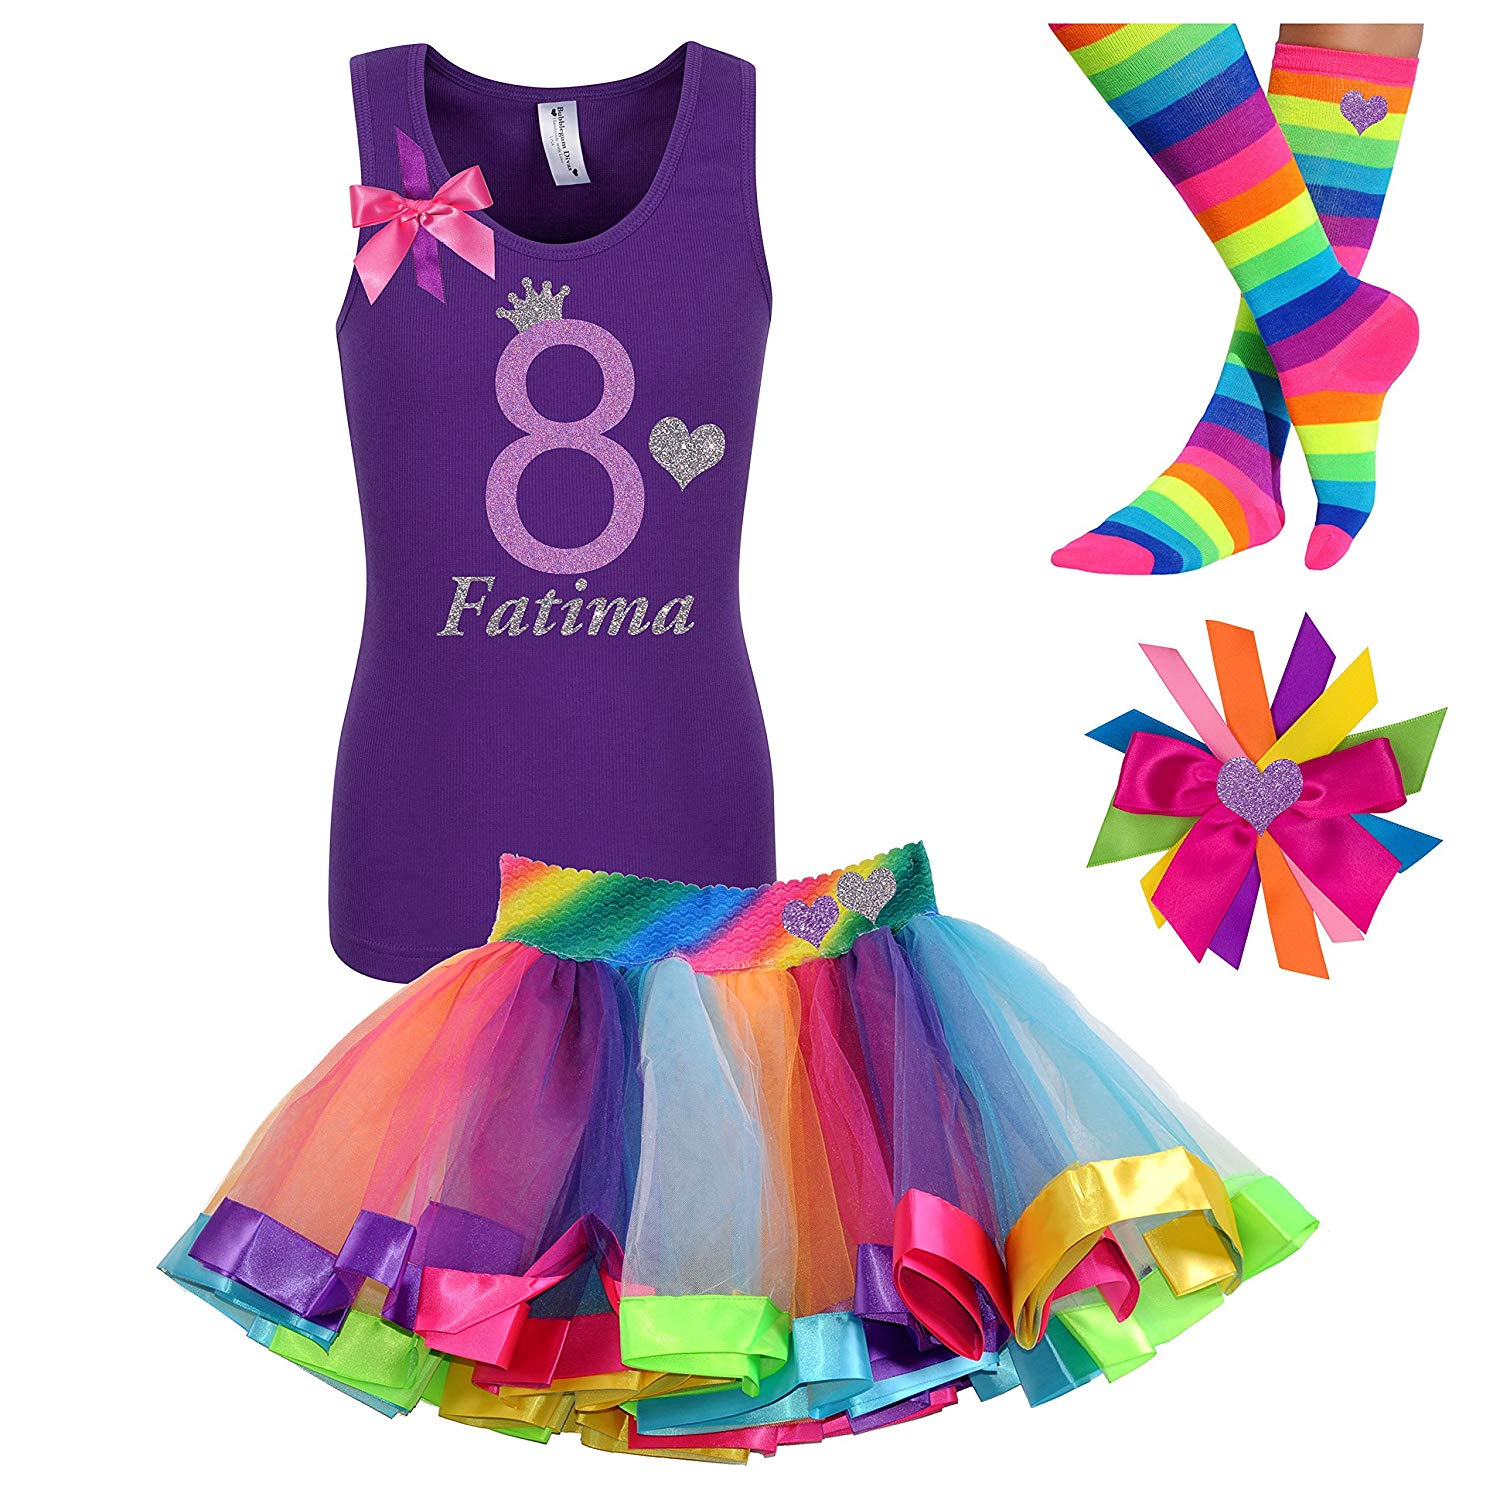 2891c53b Get Quotations · 8th Birthday Shirt Rainbow Heart Tutu Outfit 4PC Gift Set  Hair Clip Personalized Name 8 years